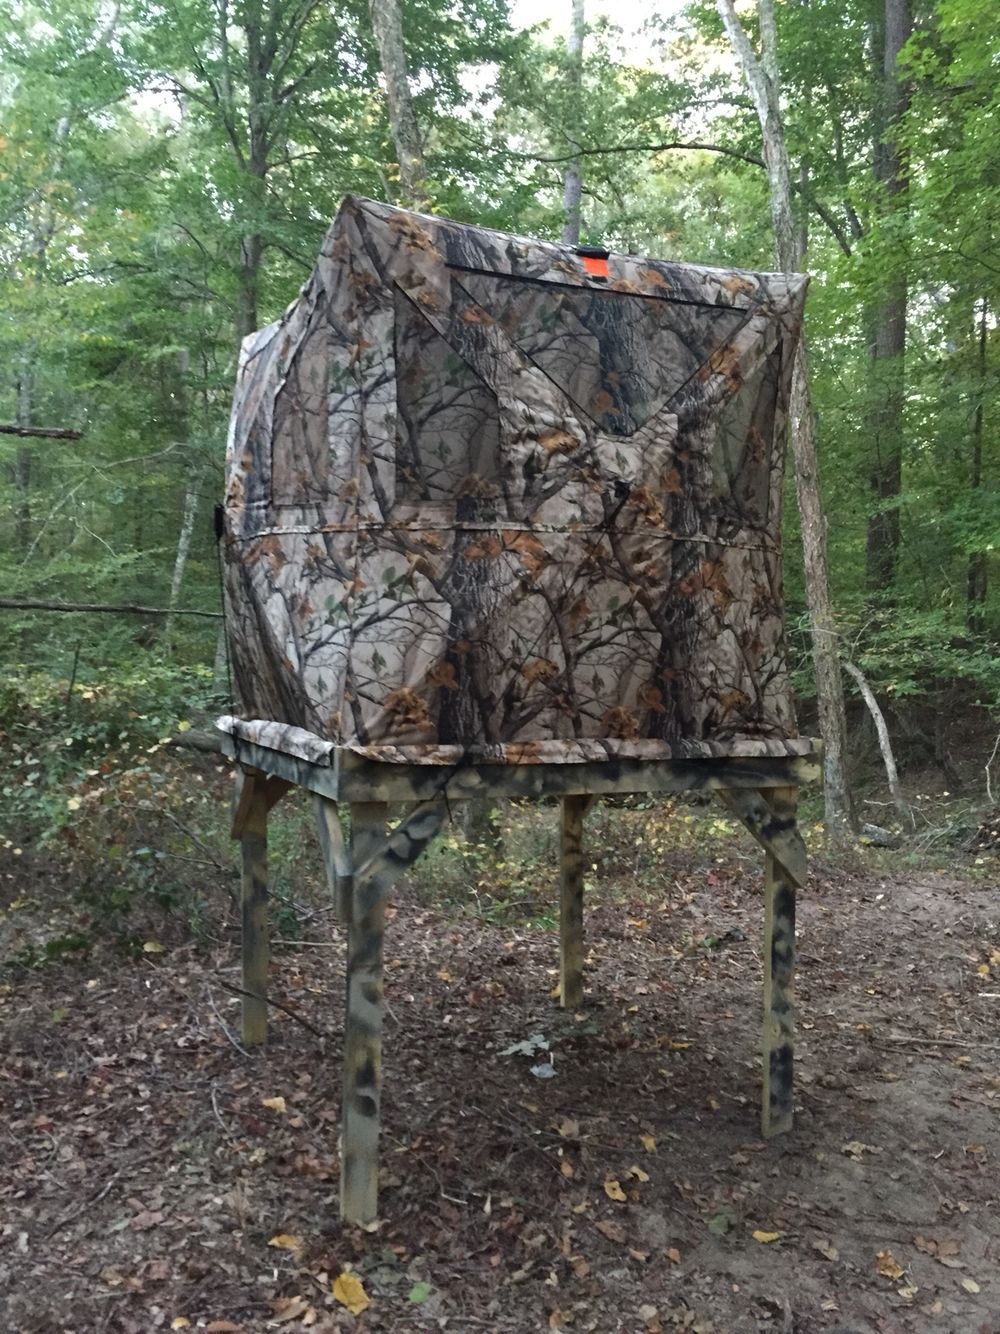 hunter ground bow youtube wyoming ameristep for hunting blind doghouse blinds watch